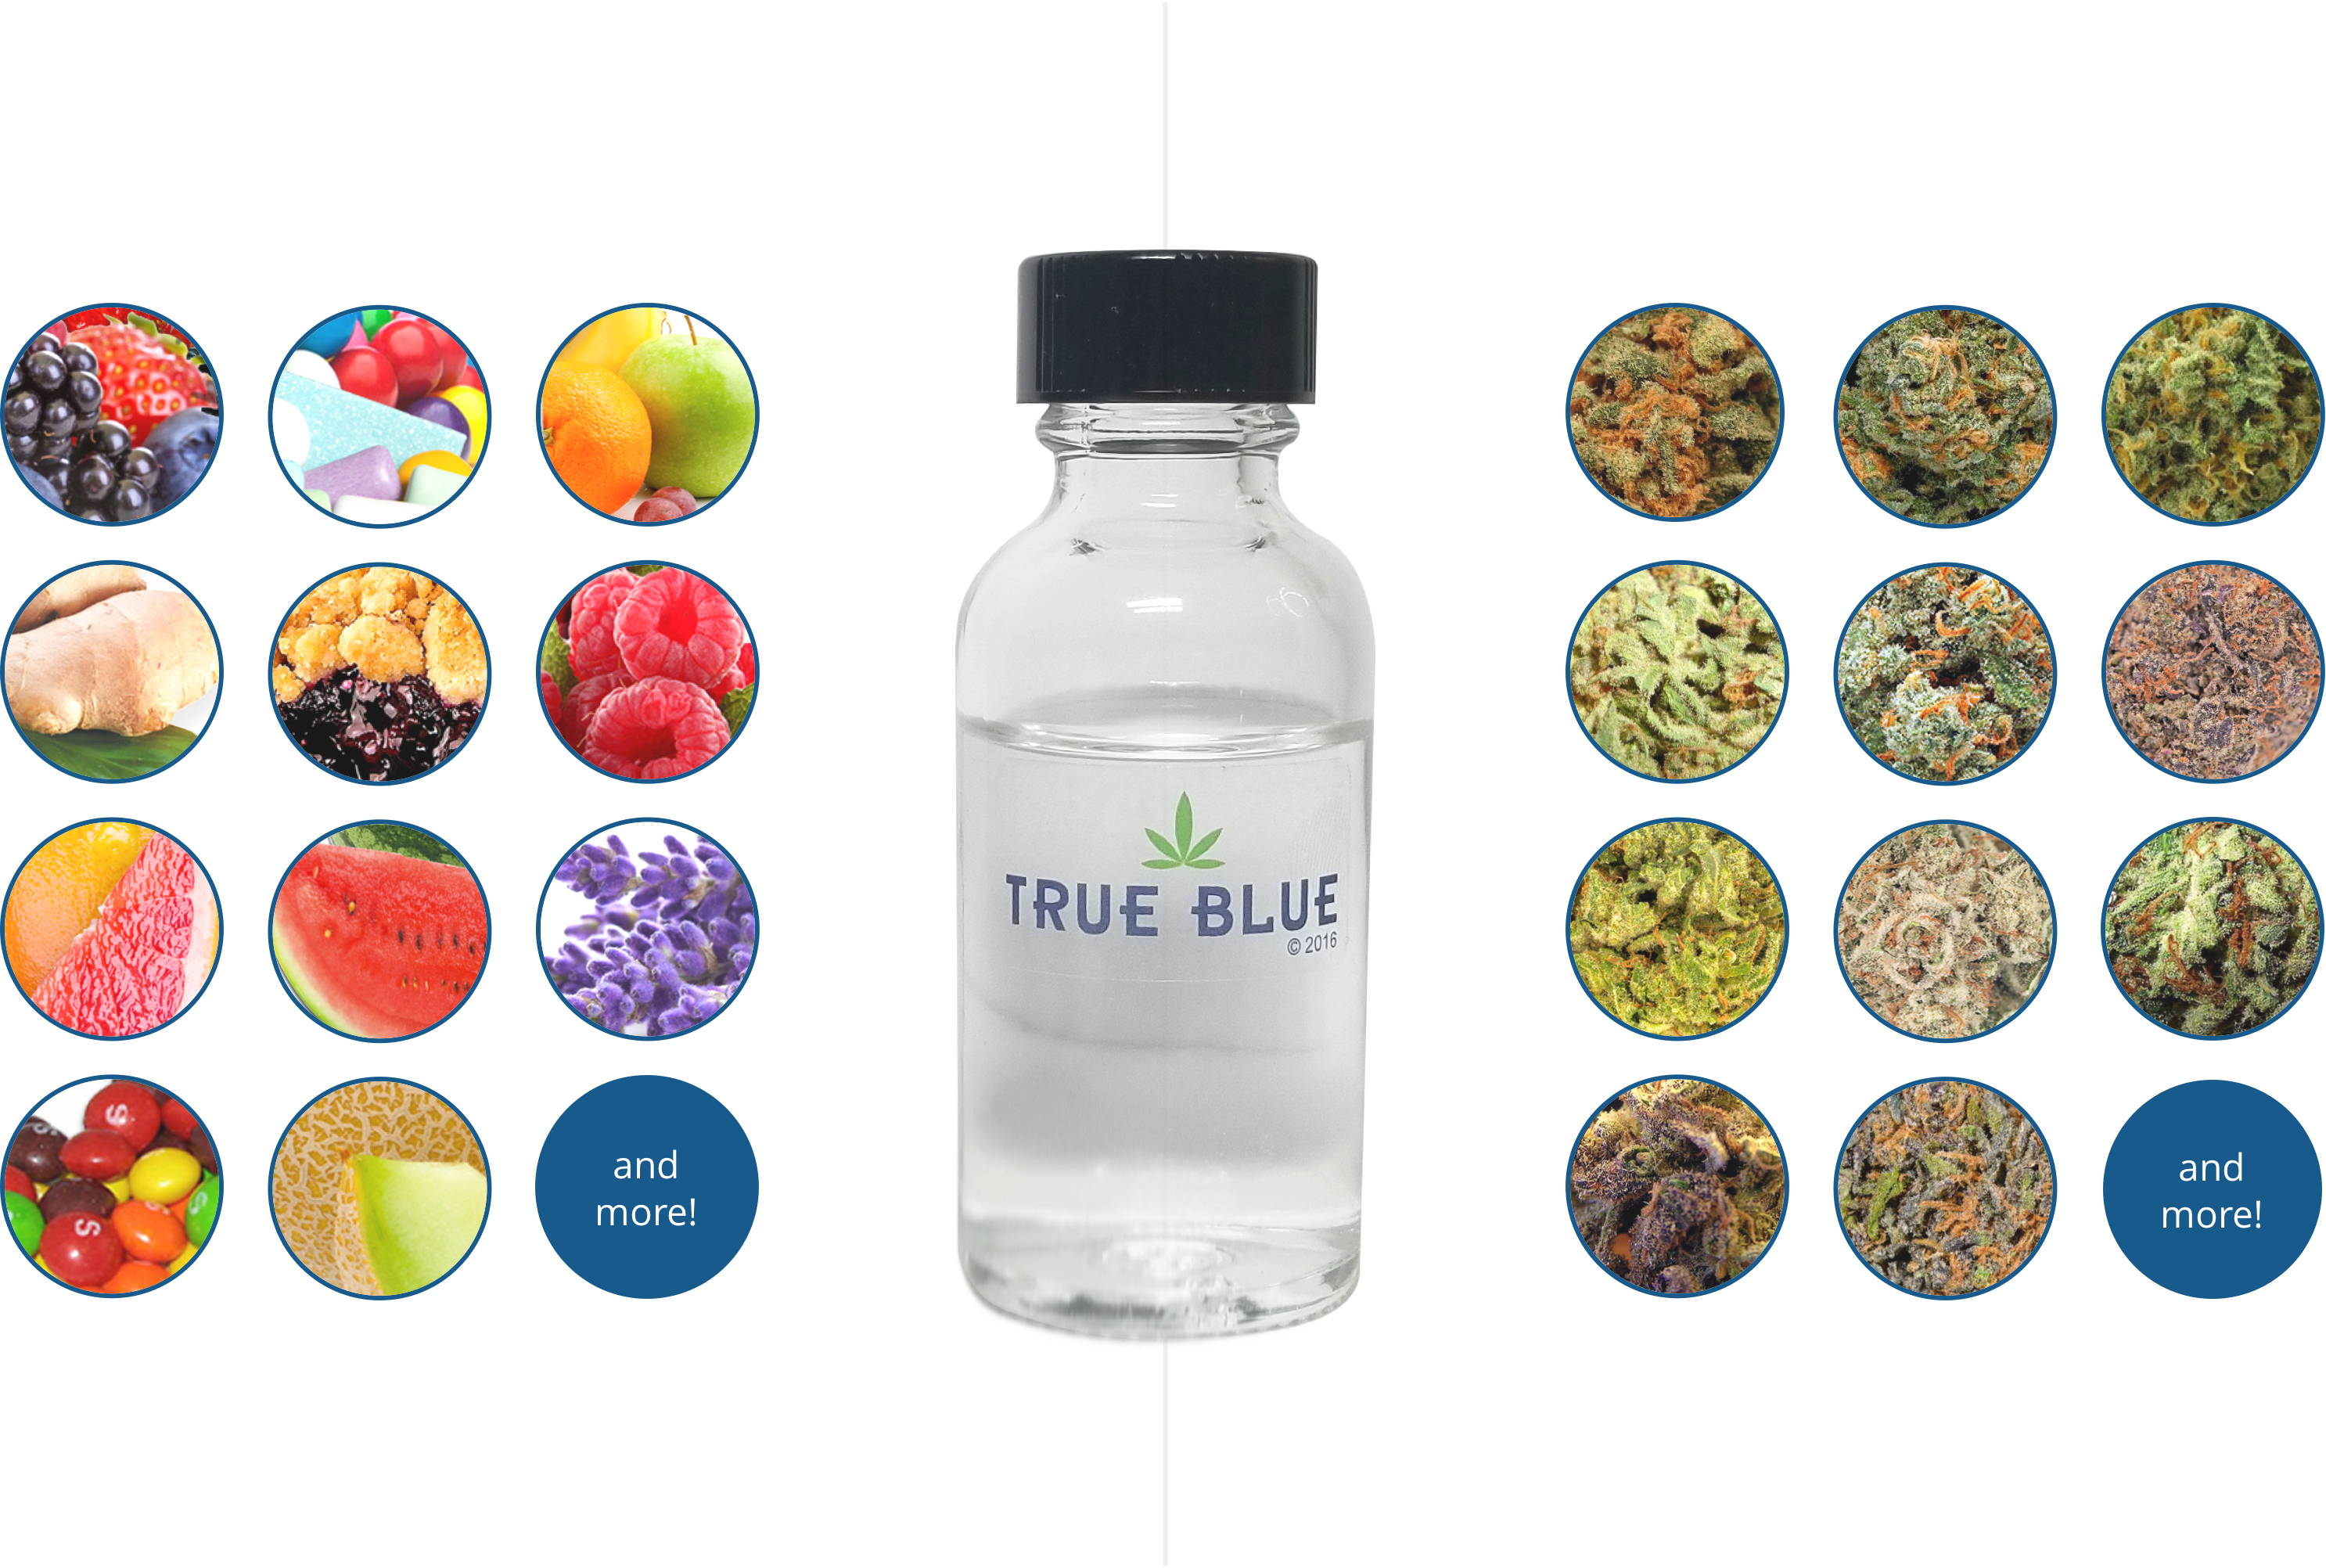 True Blue: Buy Natural Terpenes For Cannabis